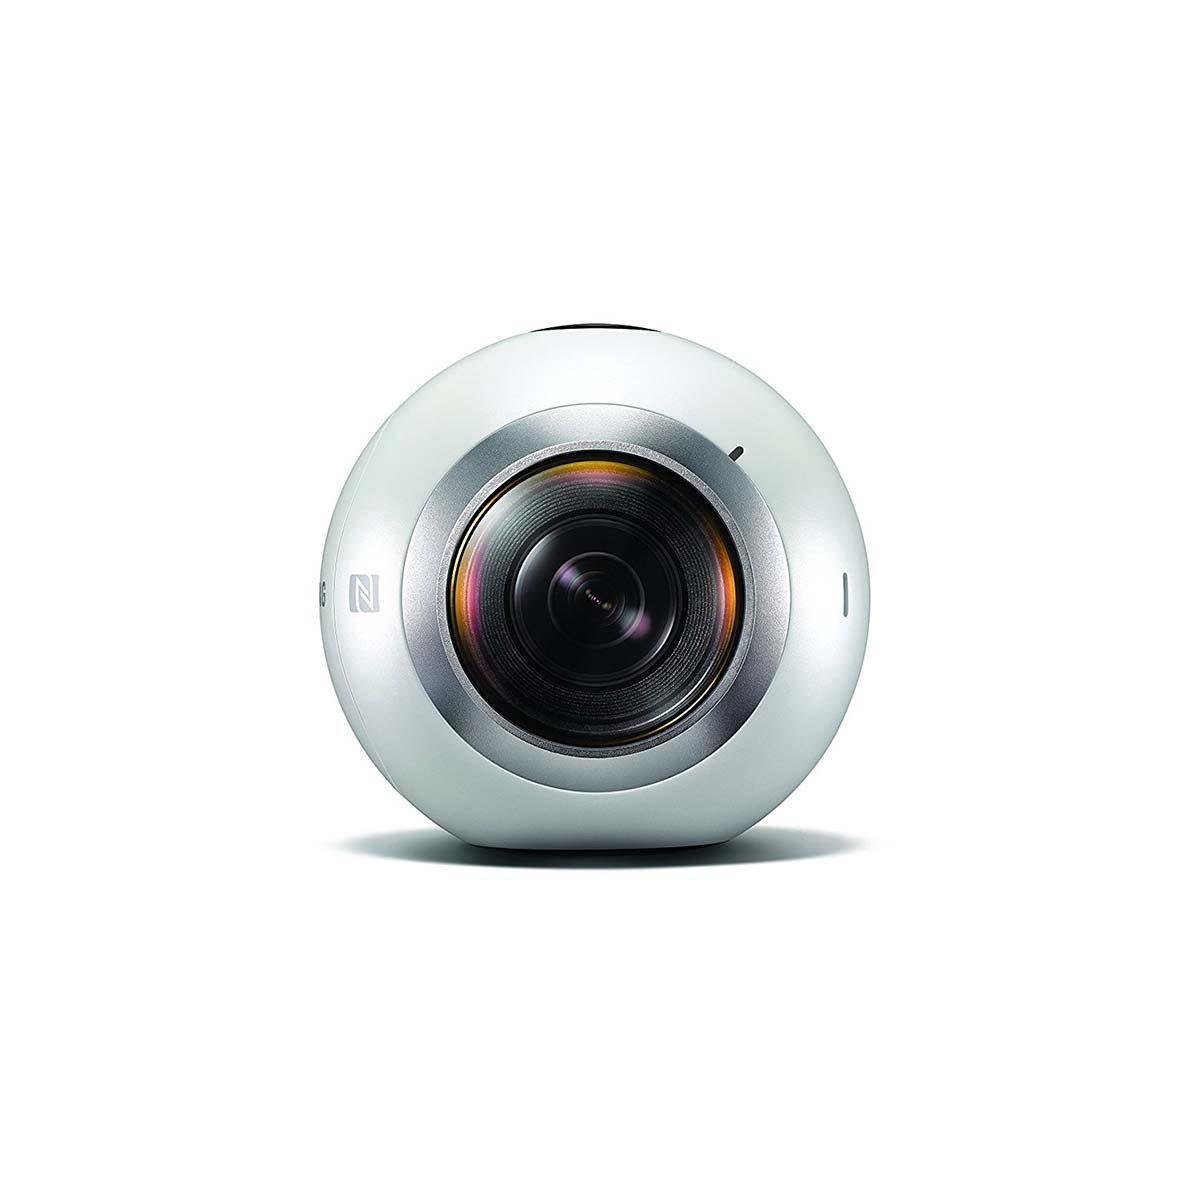 Gear 360 Real 360° High Resolution VR Camera